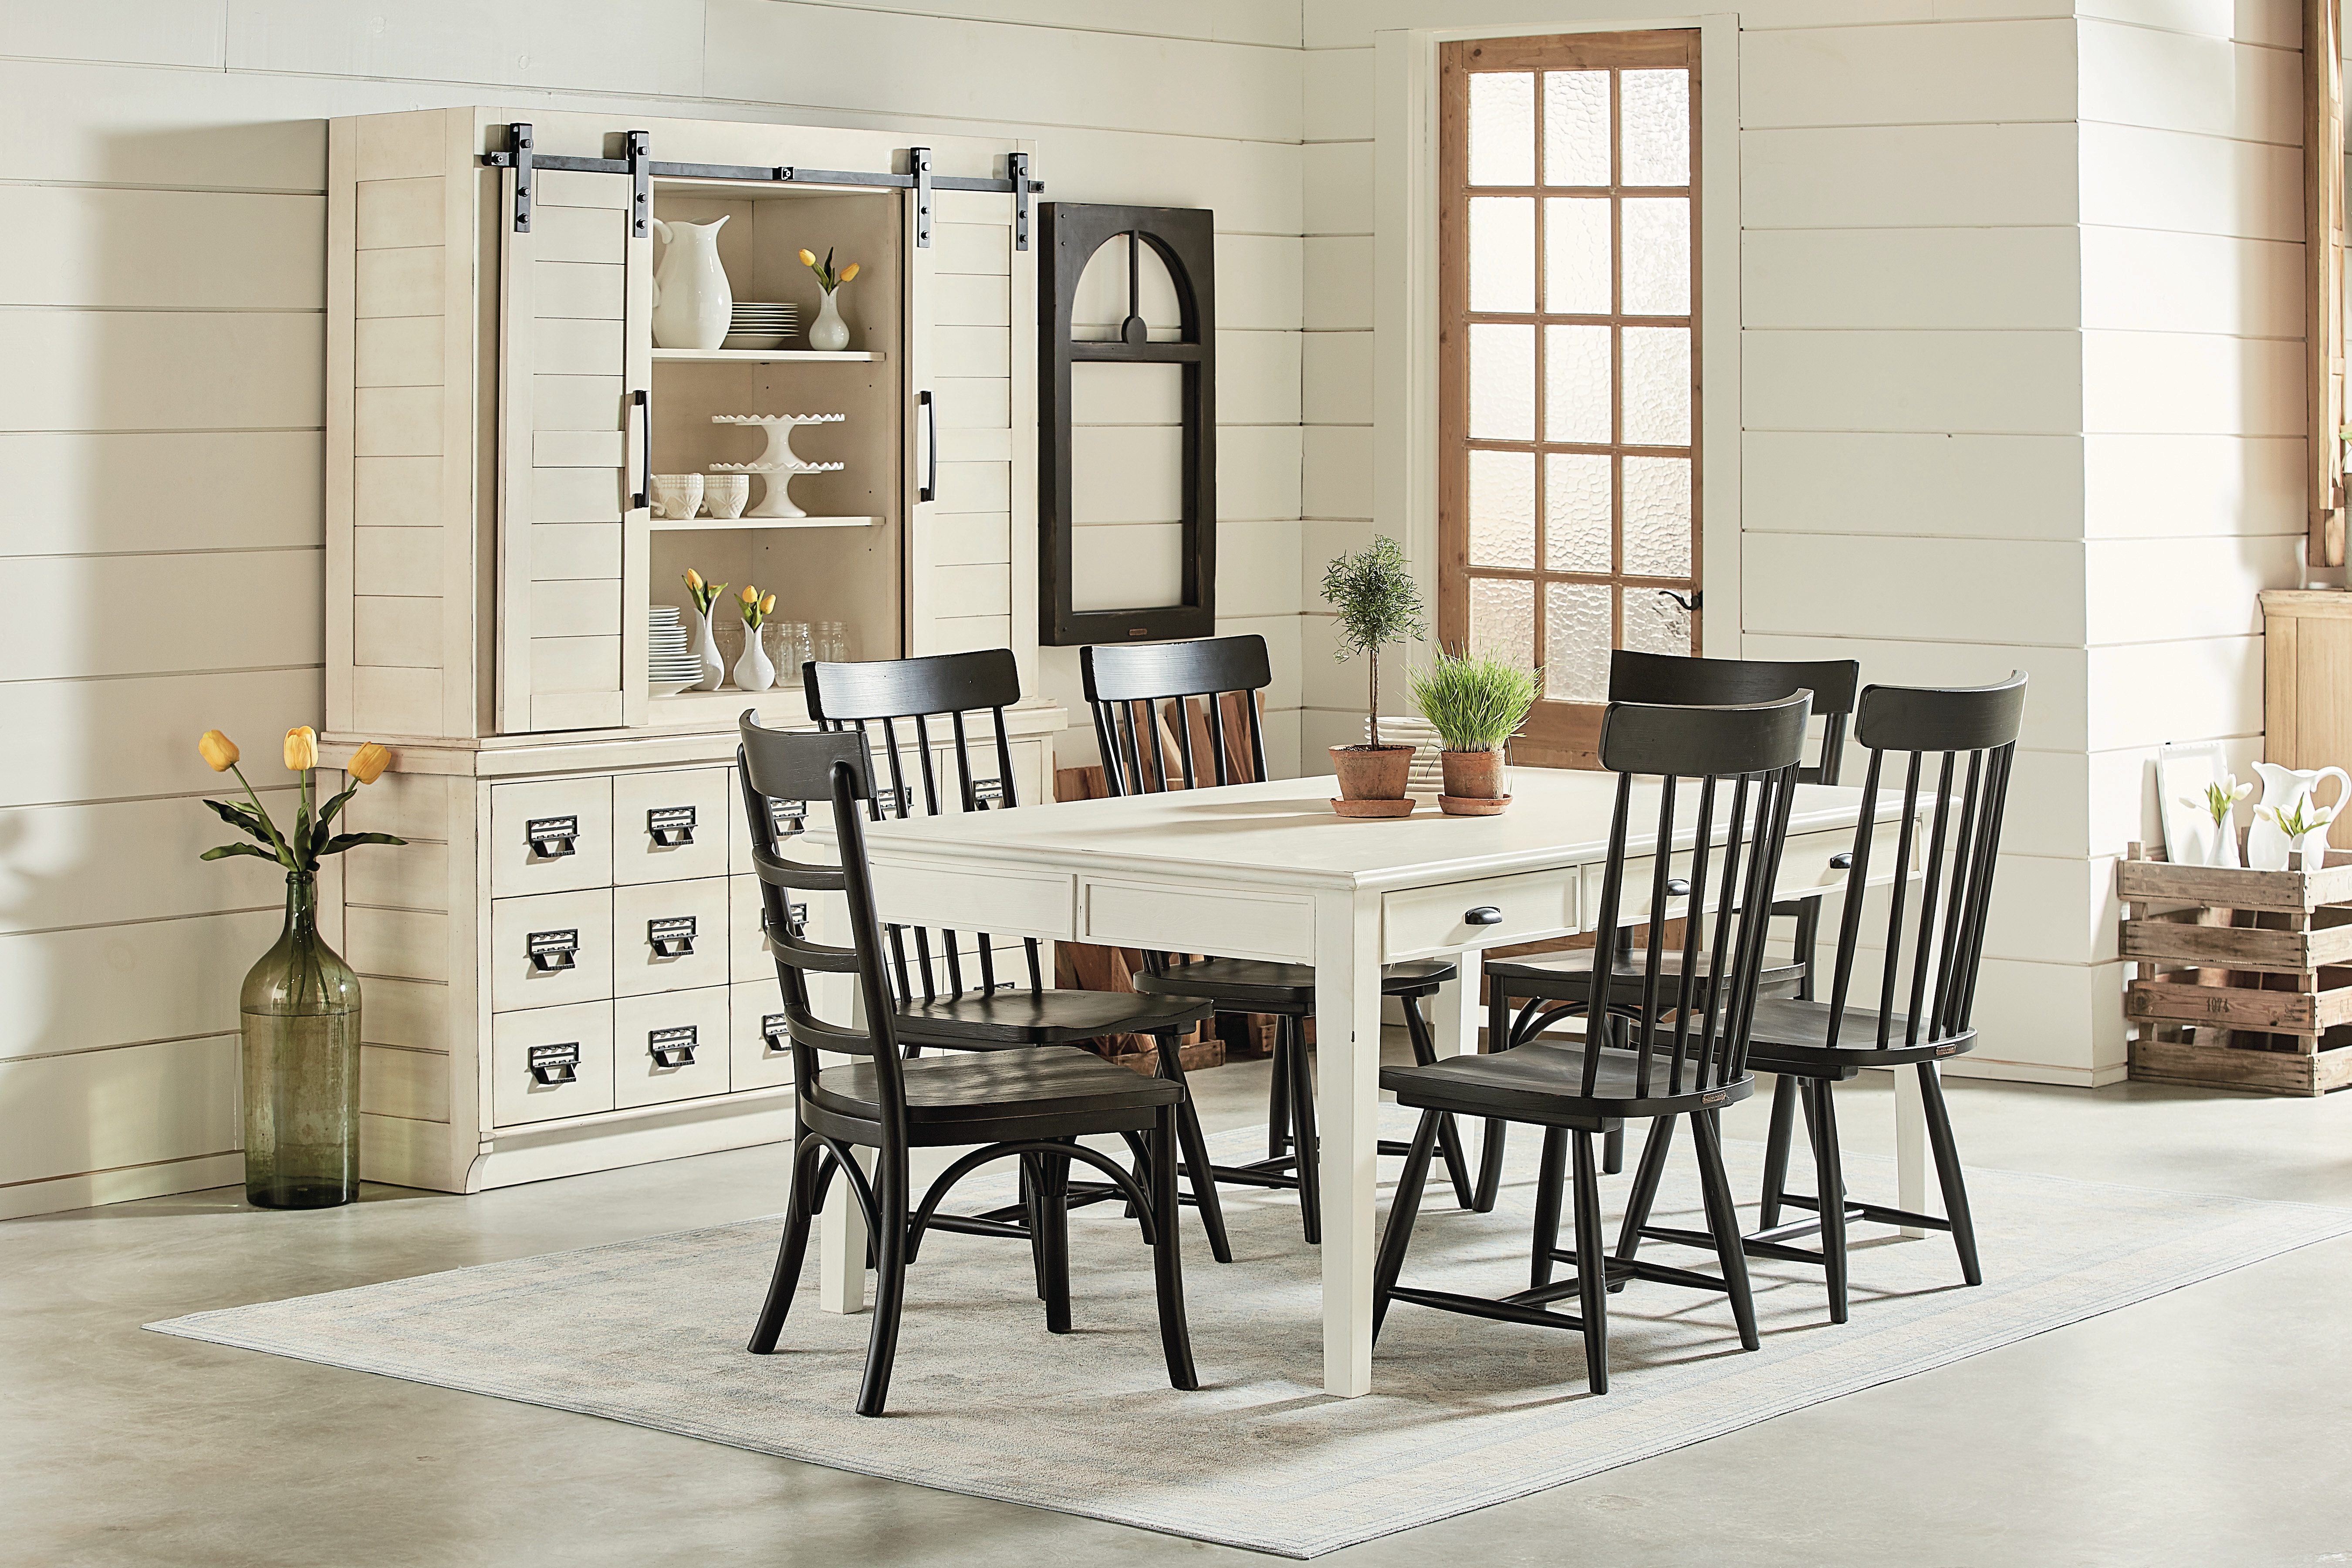 Dining Room 6 Chairs Part - 49: Magnolia Home Farmhouse Keeping Table SETTING 6010101B TABLE U0026 6 CHAIRS